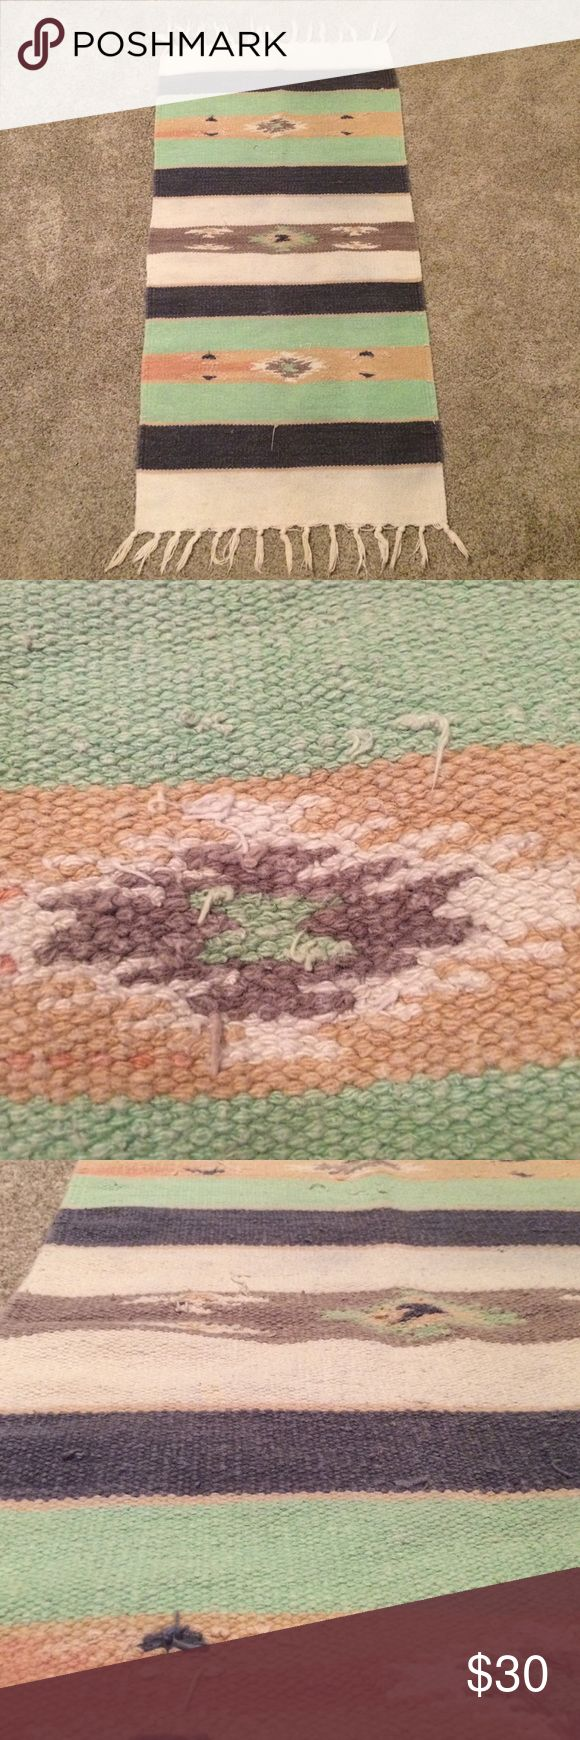 Southwestern tapestry woven wall hanging throw Versatile southwestern style rug or wall hanging decor - loose strings and faded - adds character to the piece - mint blue cream gray tan peach - woven wall hanging Other